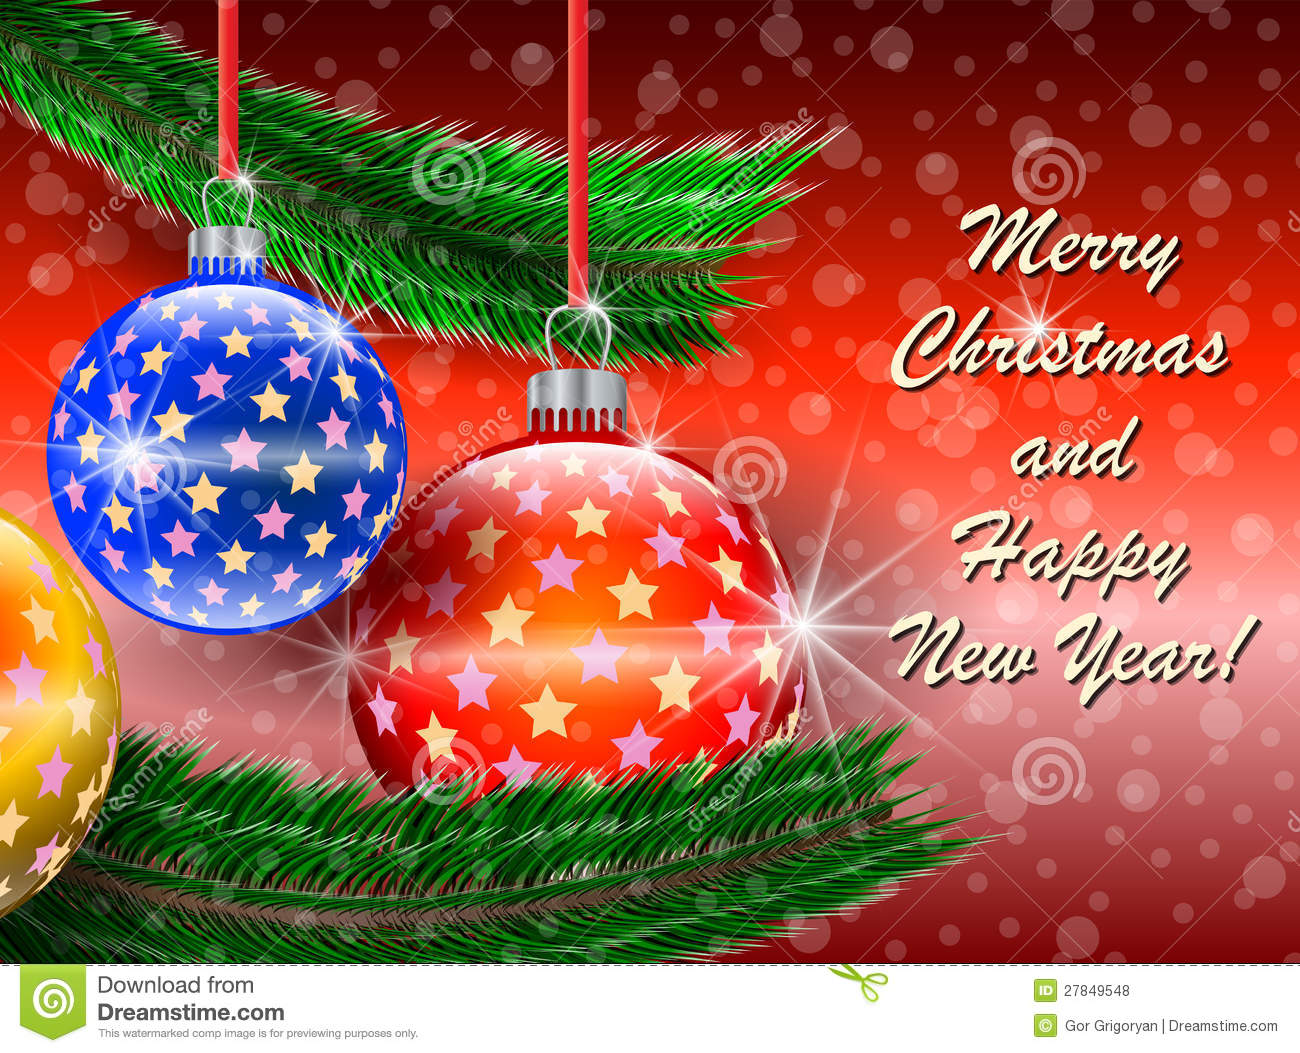 Merry christmas and happy new year greetings card stock vector merry christmas and happy new year greetings card m4hsunfo Image collections